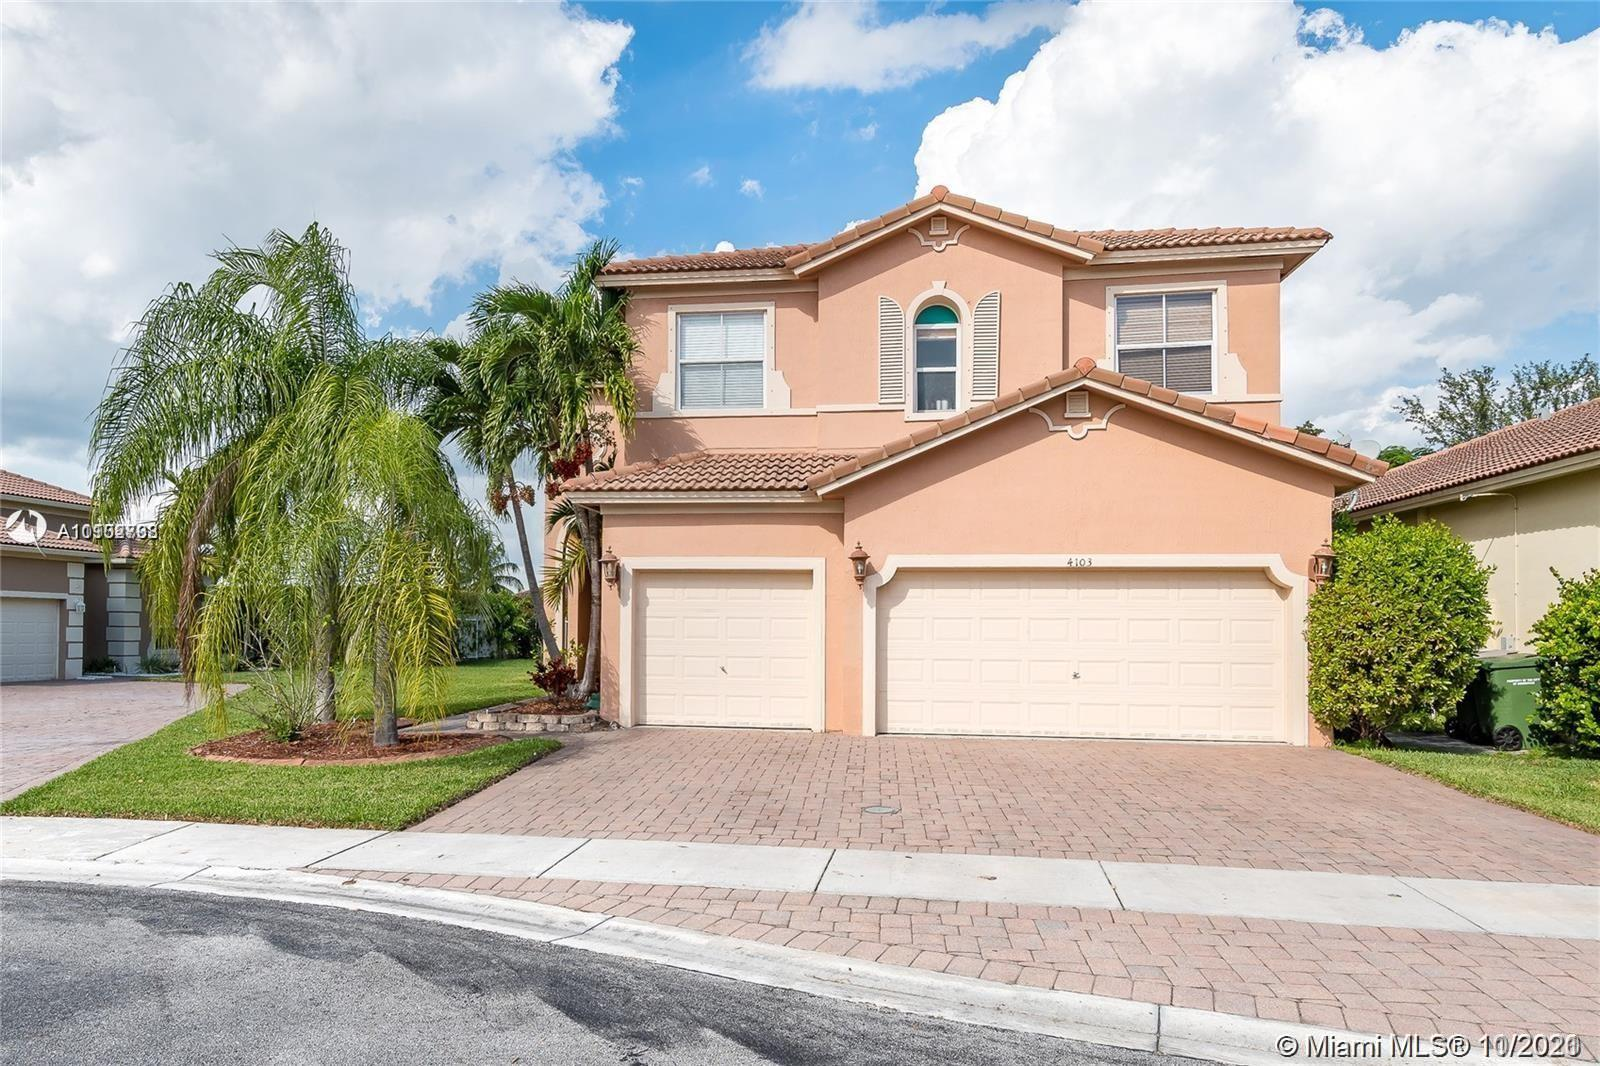 Single Family Home For Sale WATERSTONE2,727 Sqft